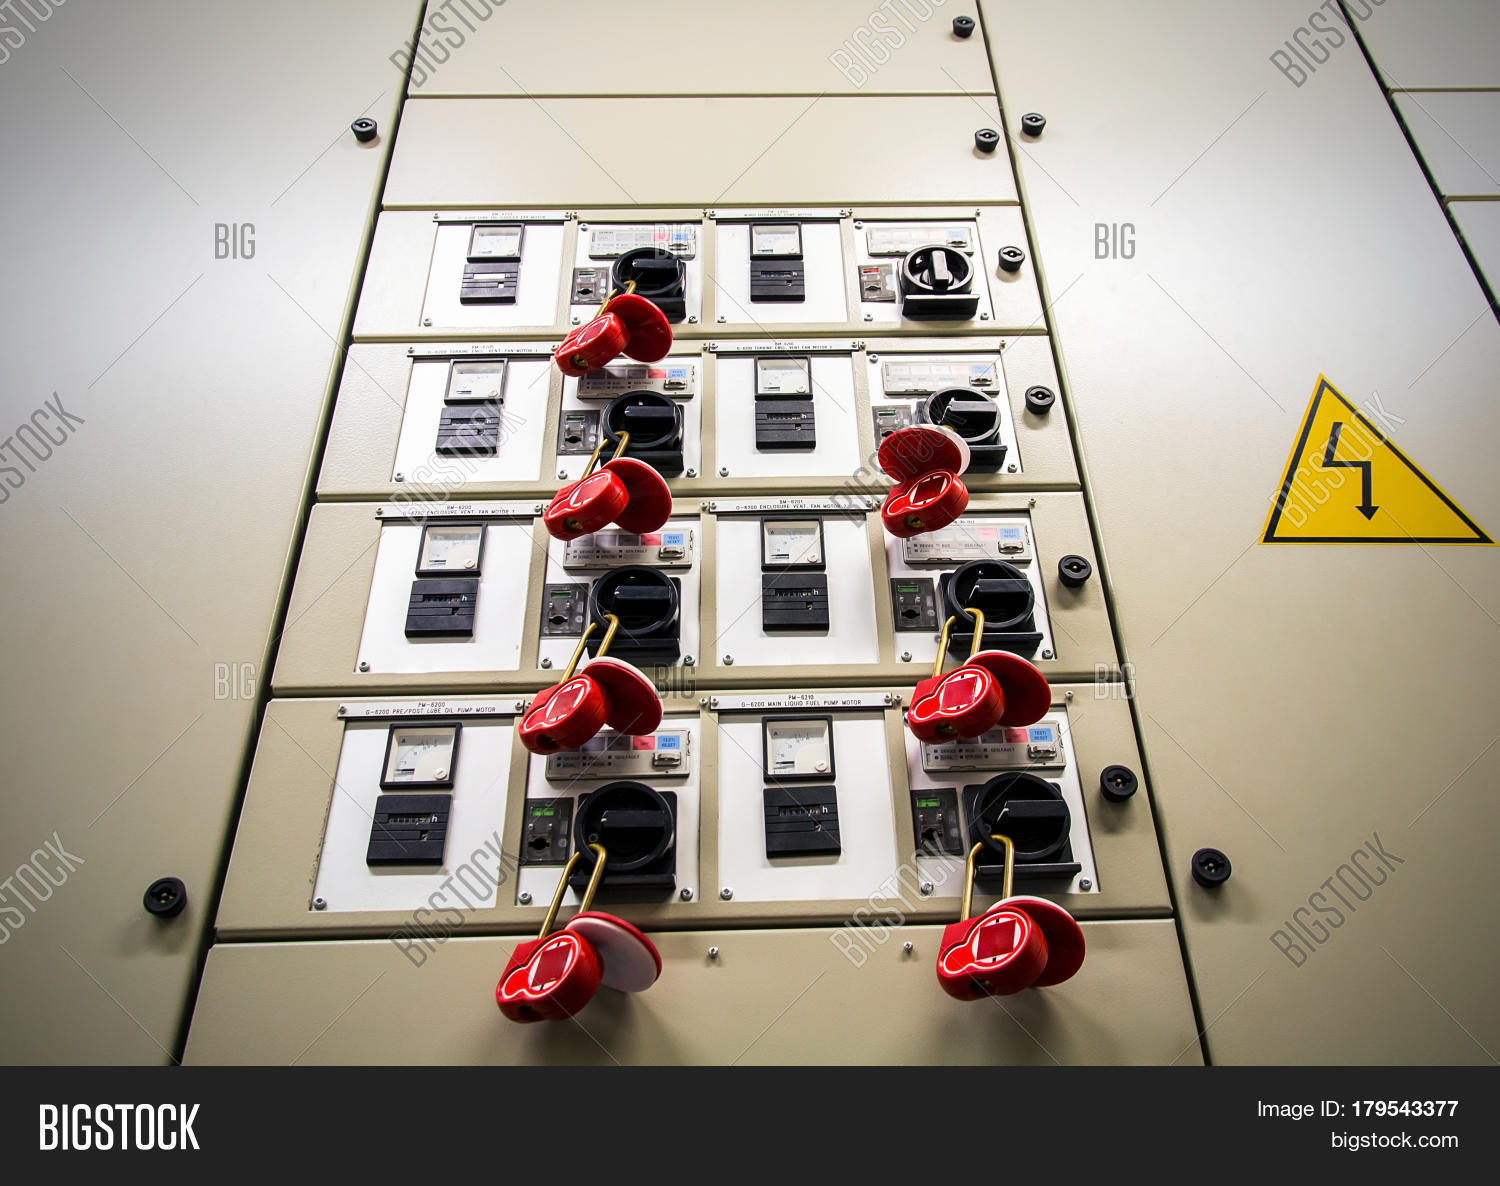 Famous 7 Way Guitar Switch Tall Bbbind Catalog Rectangular 5 Way Import Switch Wiring Jbs Technologies Remote Starter Old Ibanez Bass Pickups YellowIbanez Srx Bass Electrical Breaker Box Locked Out Image \u0026 Photo | Bigstock